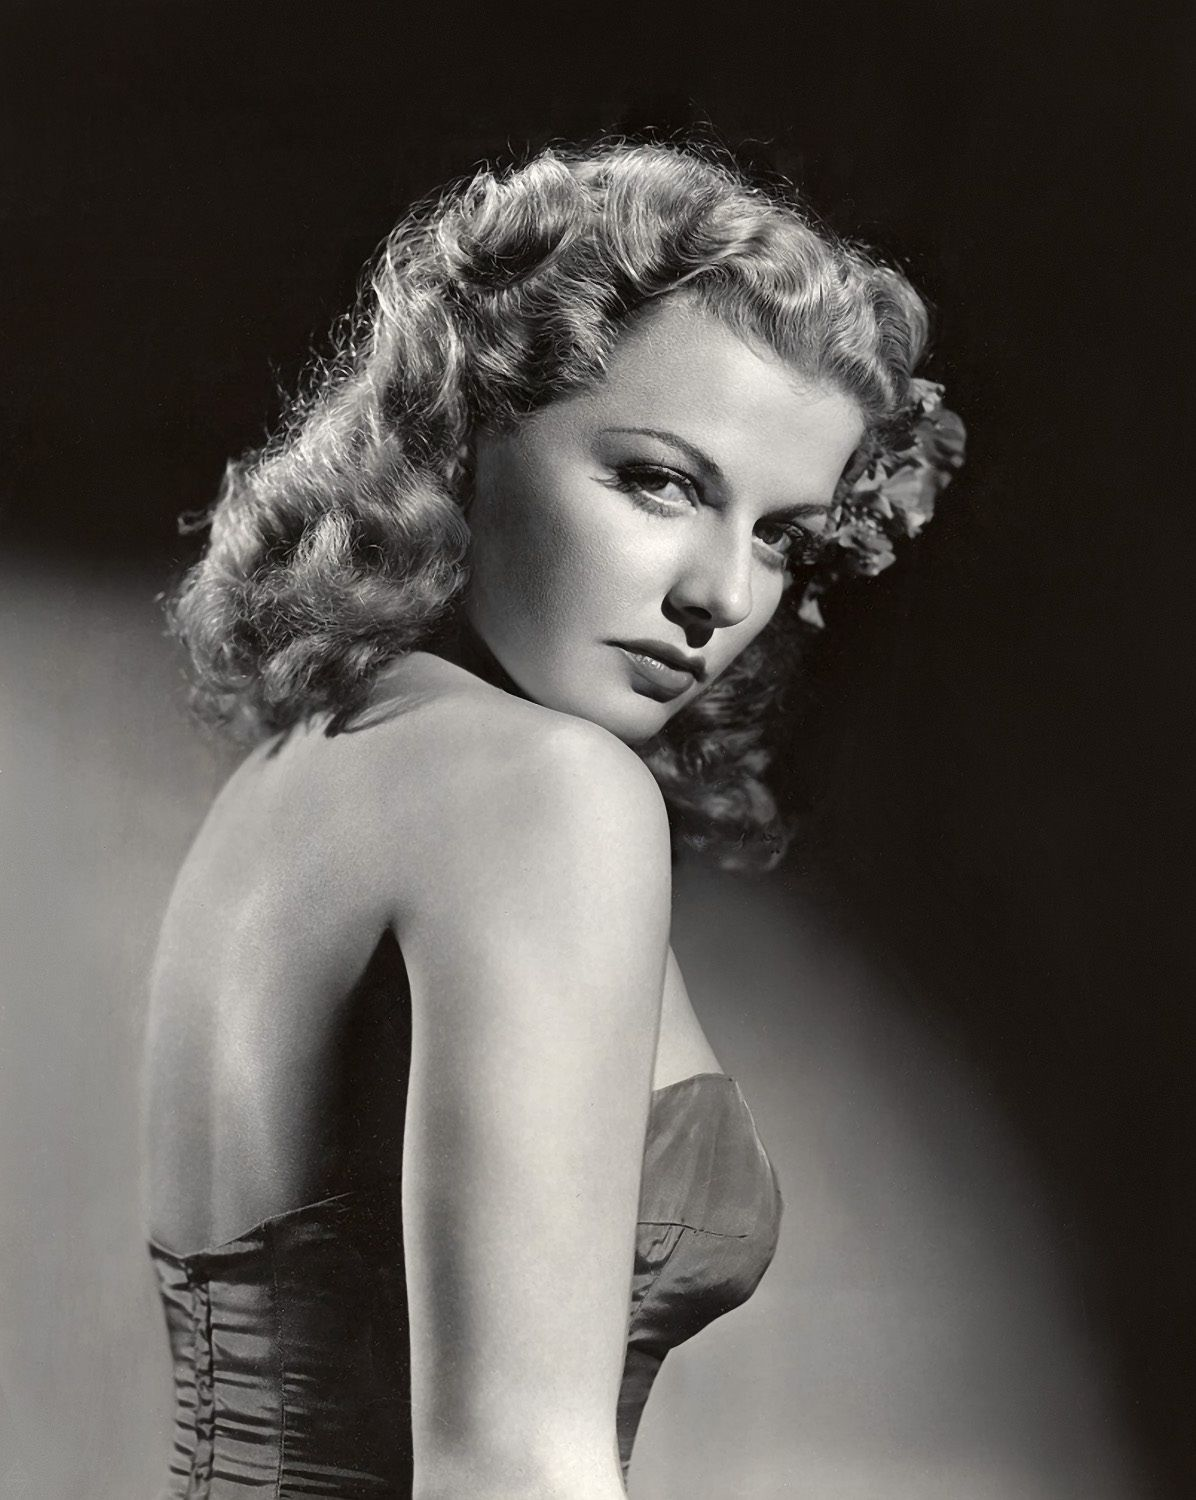 ann sheridan wcncann sheridan instagram, ann sheridan actress, ann sheridan wiki, ann sheridan facebook, ann sheridan imdb, ann sheridan measurements, ann sheridan son, ann sheridan obituary, ann sheridan grave, ann sheridan weight loss, ann sheridan wcnc, ann sheridan relationships, ann sheridan feet, ann sheridan pinup, ann sheridan smoking